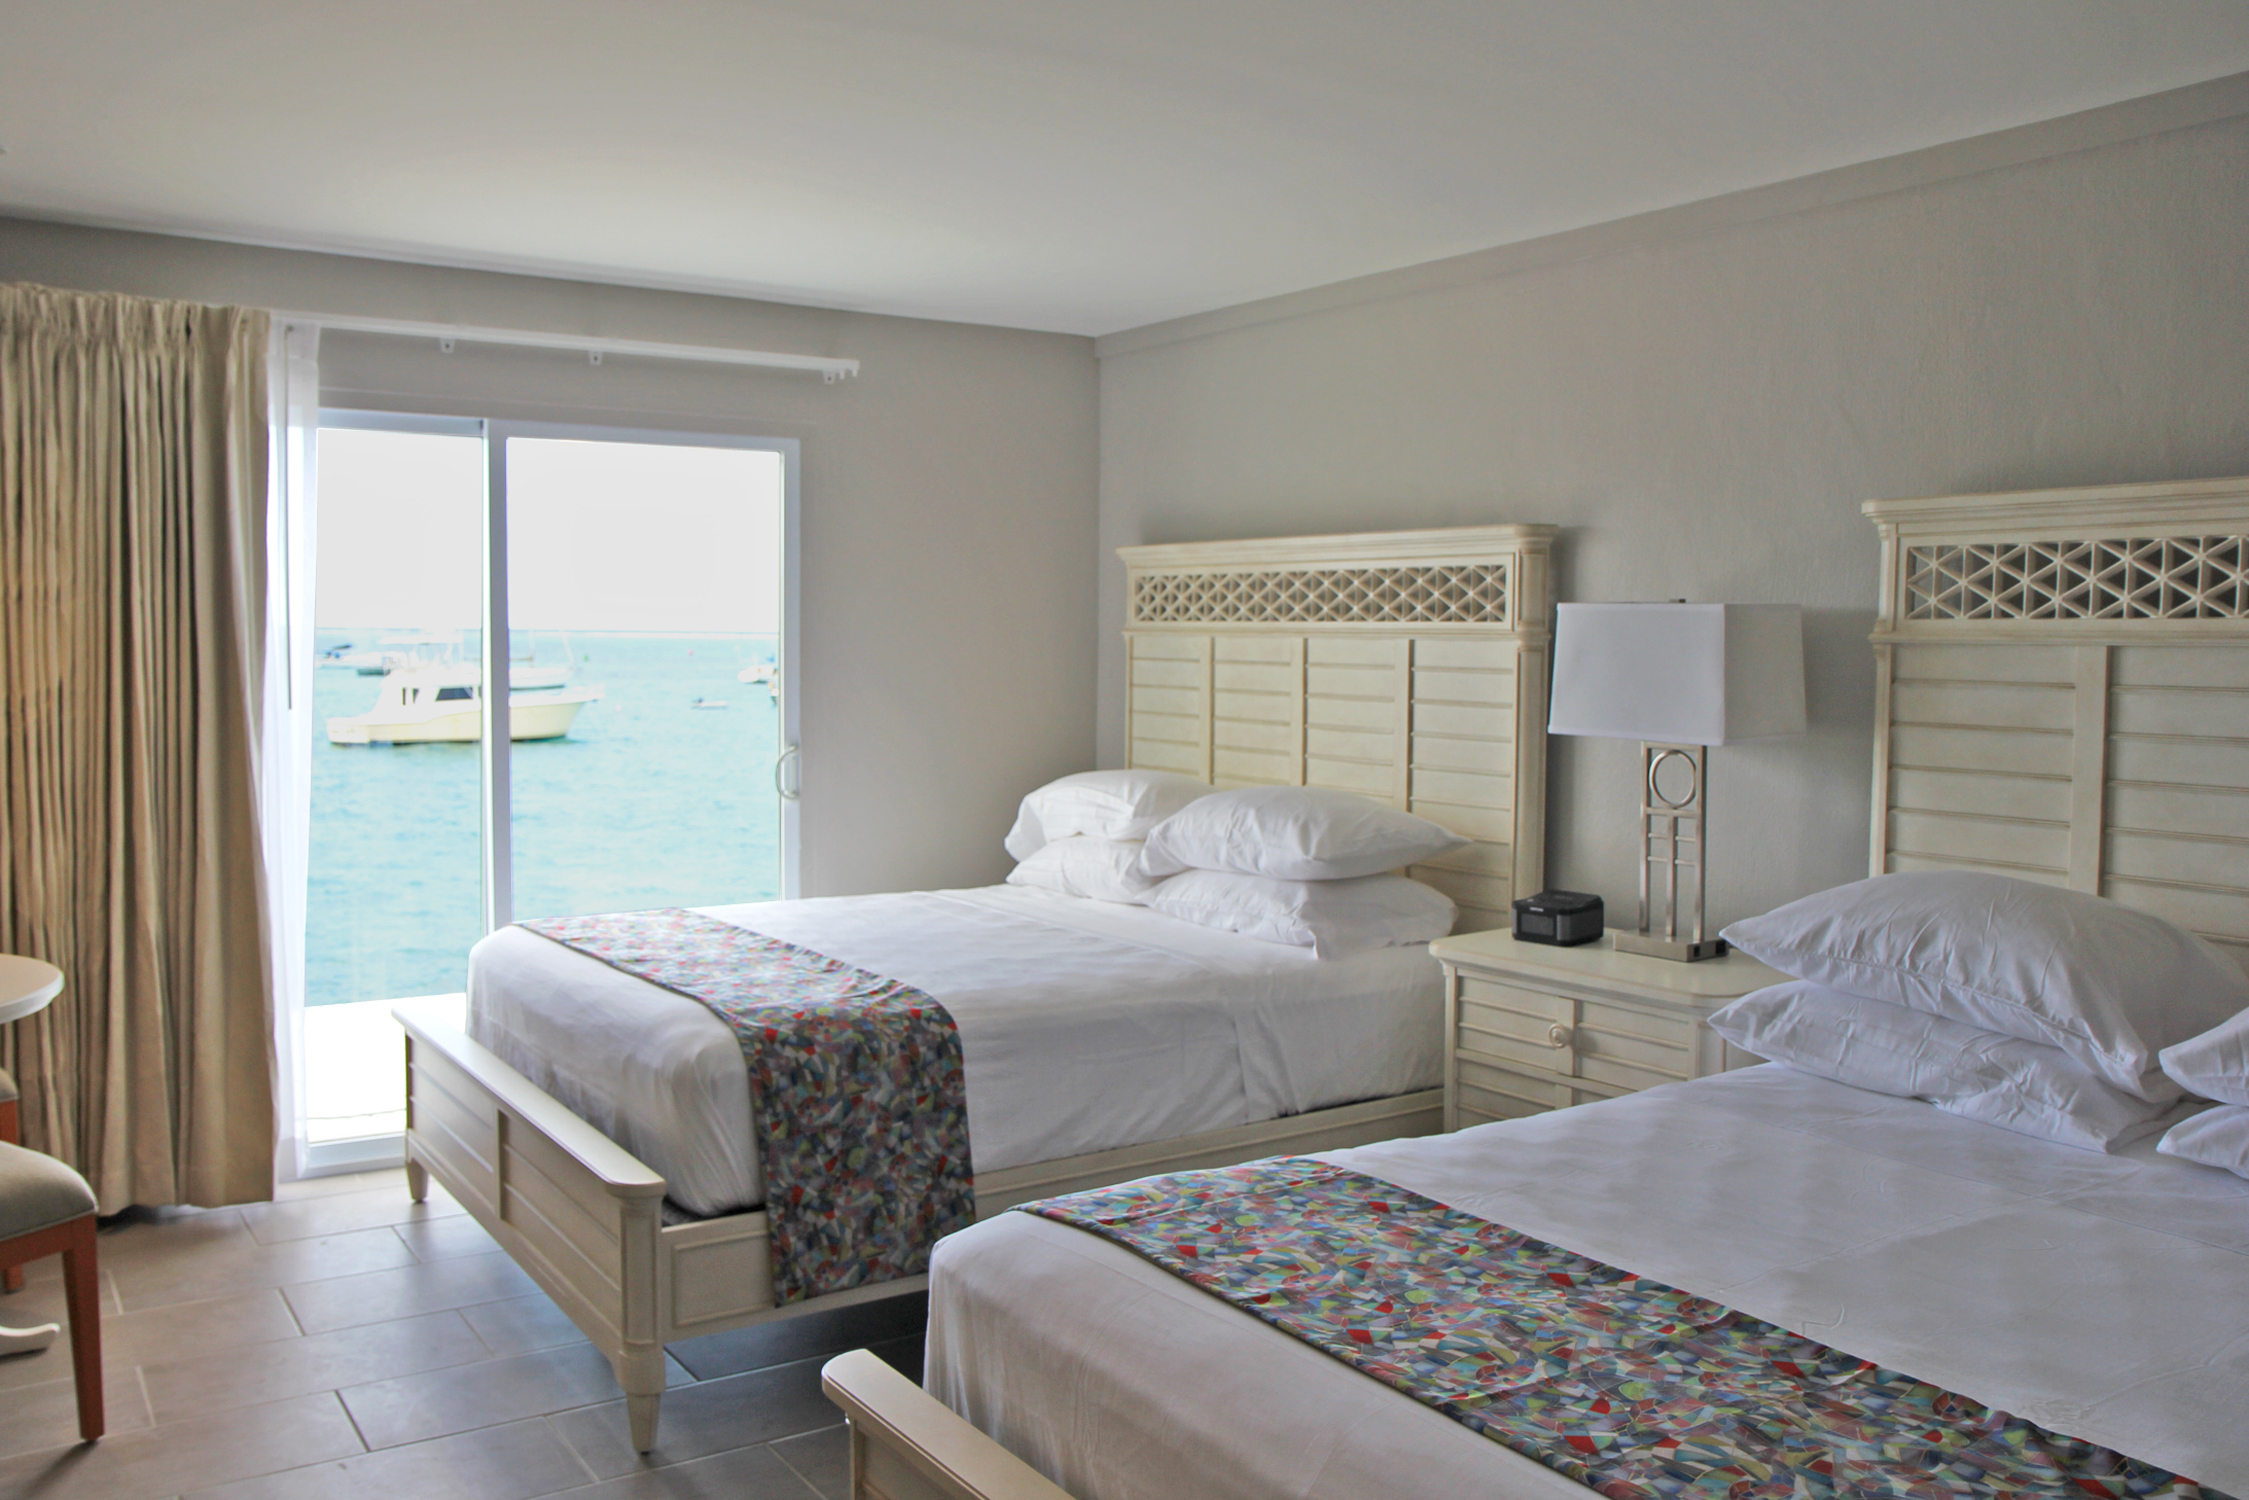 The New Room Design At Hotel Caravelle Is Brighter, More Relaxed With All  New Flooring, Linens And Furniture.